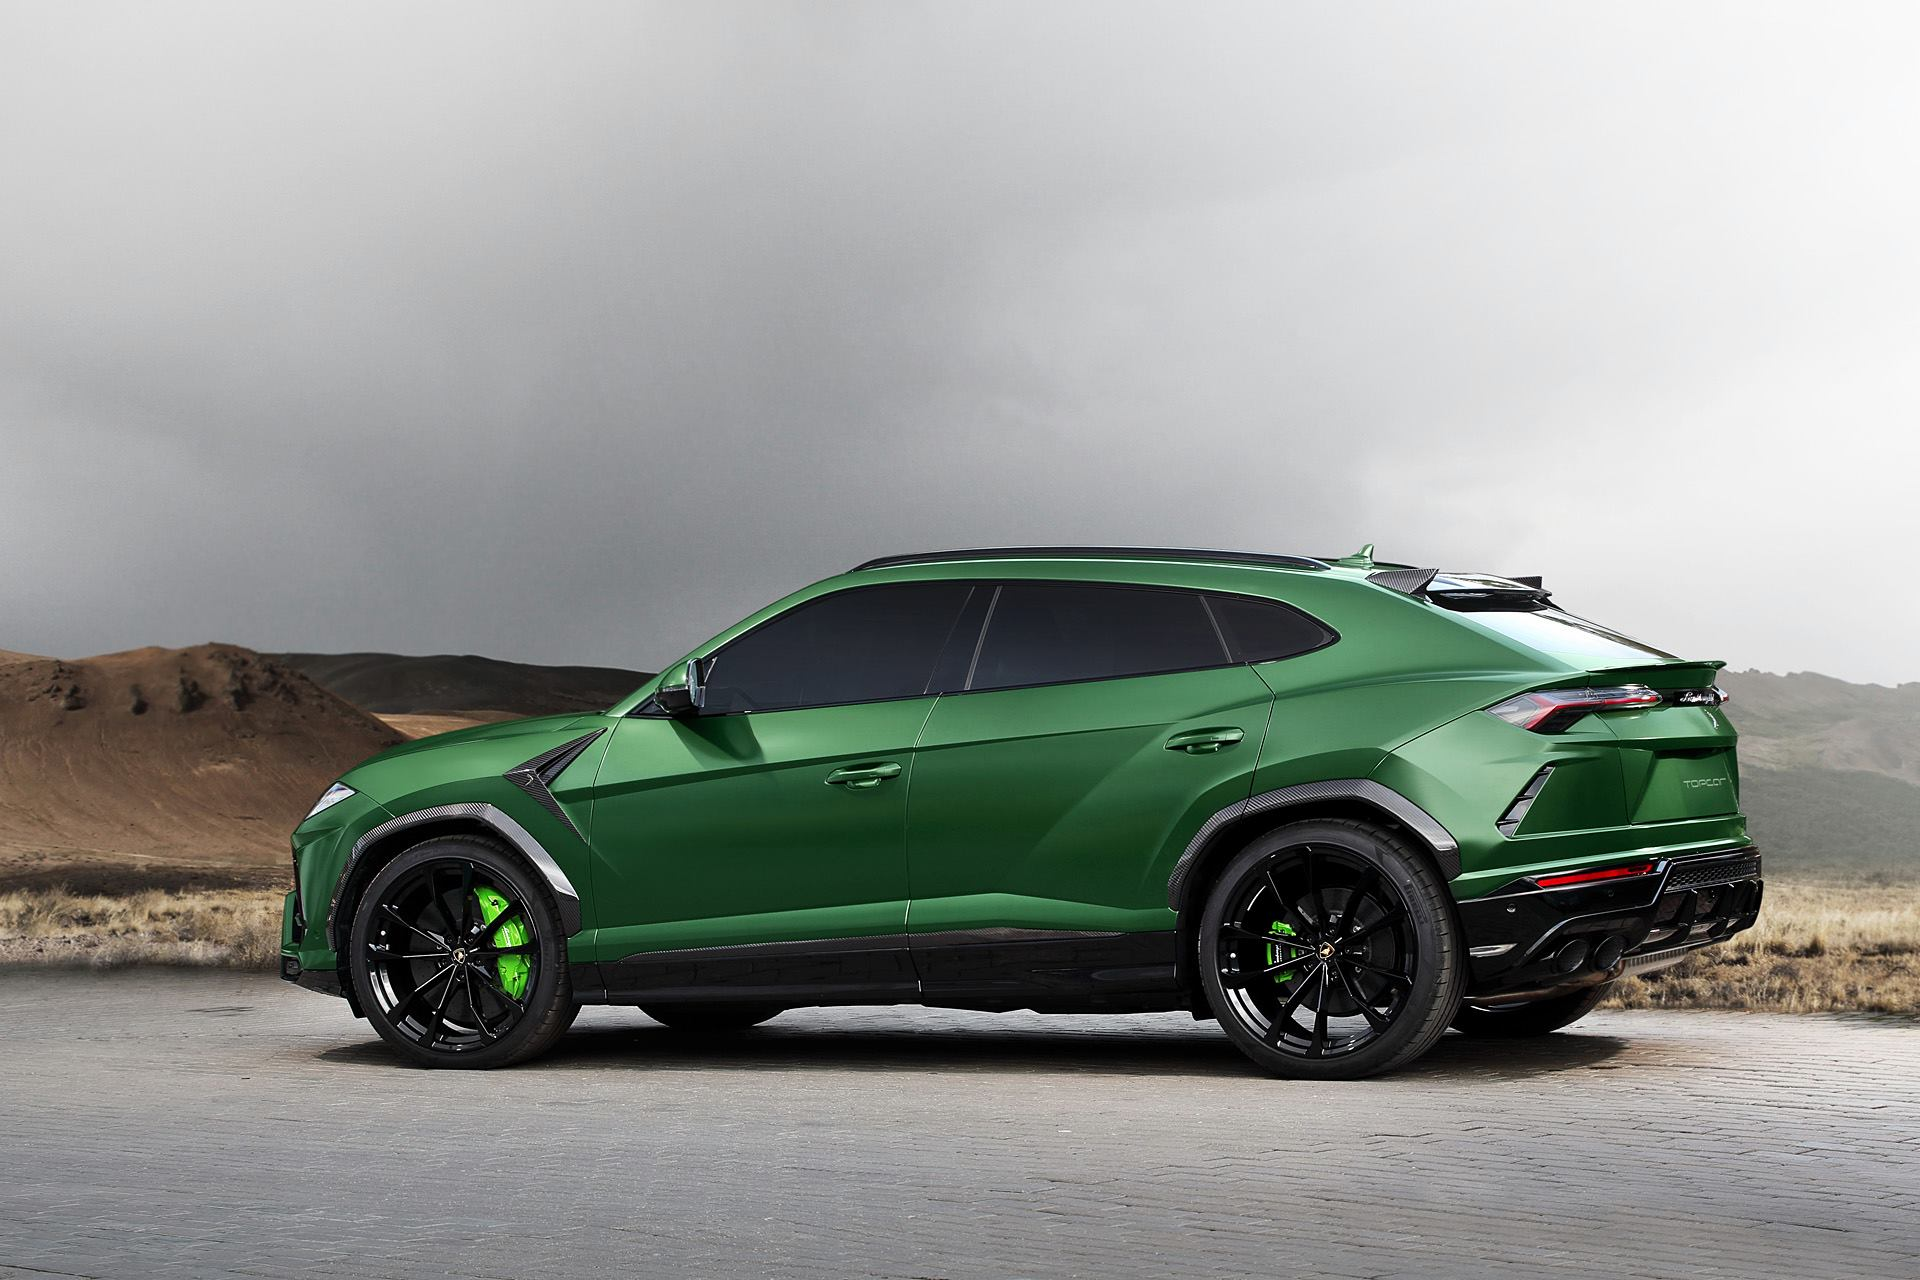 Military Green Lamborghini Urus Side View